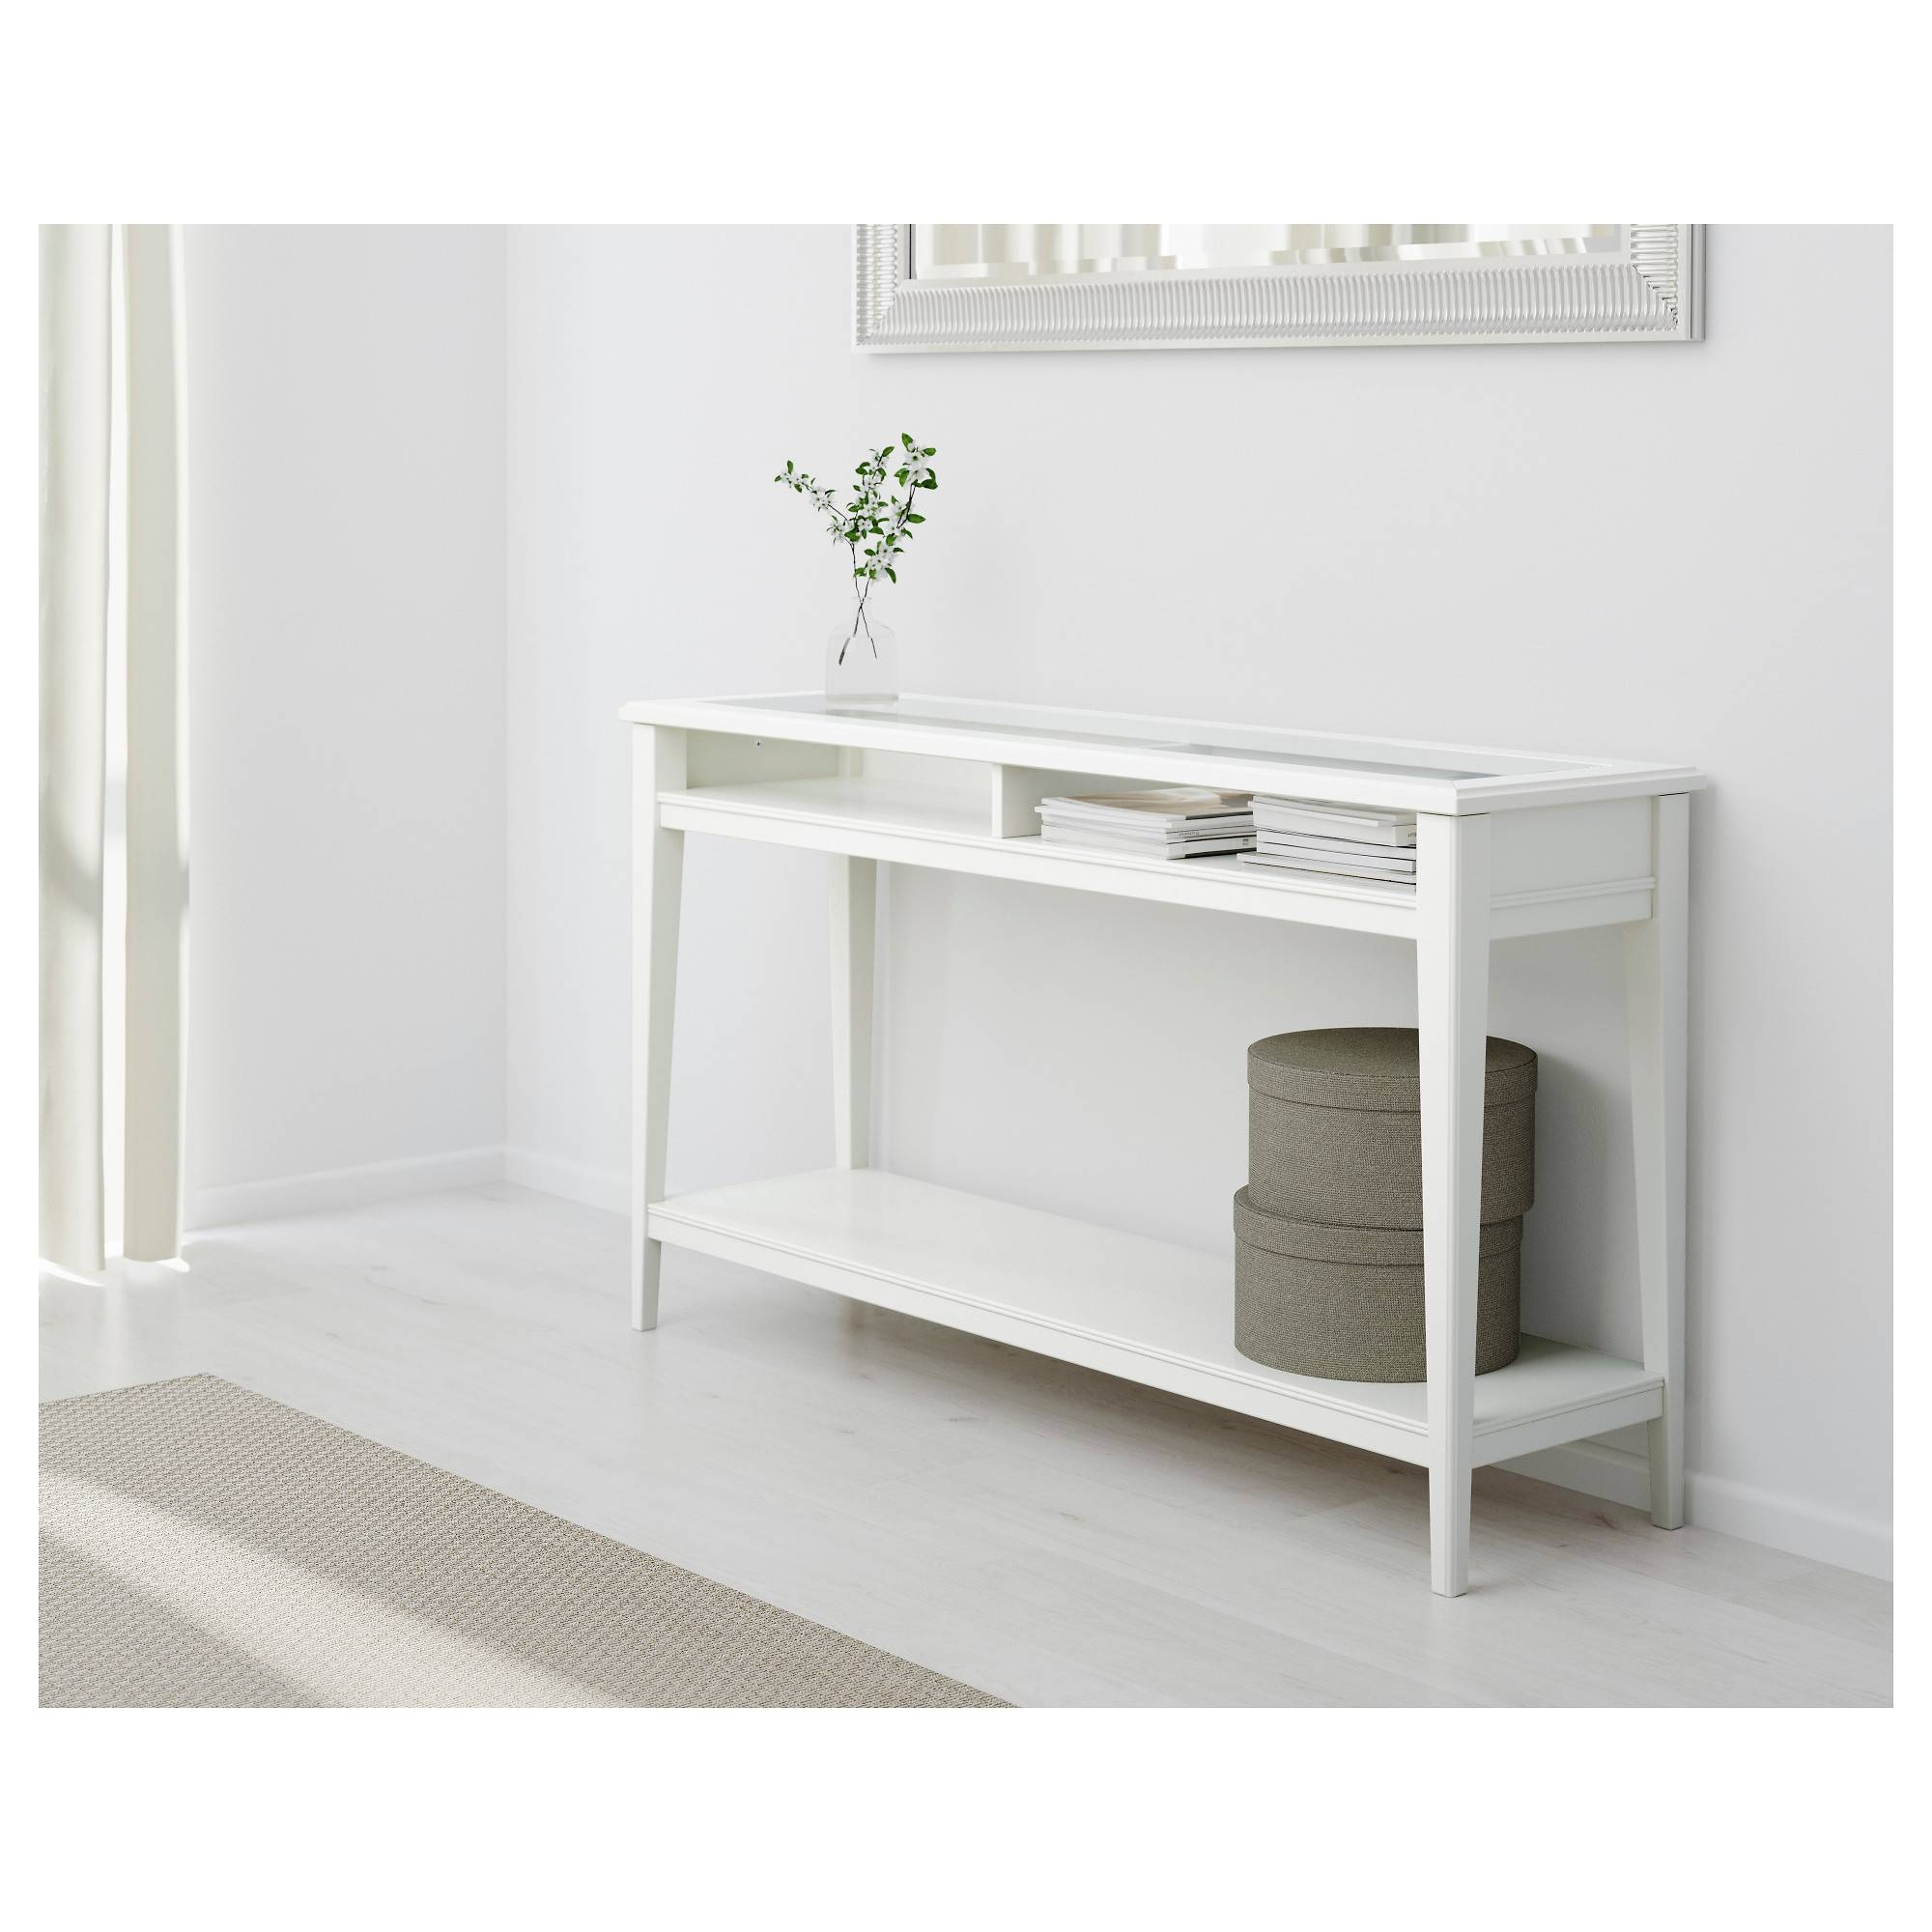 20 Collection of White Glass Sideboard